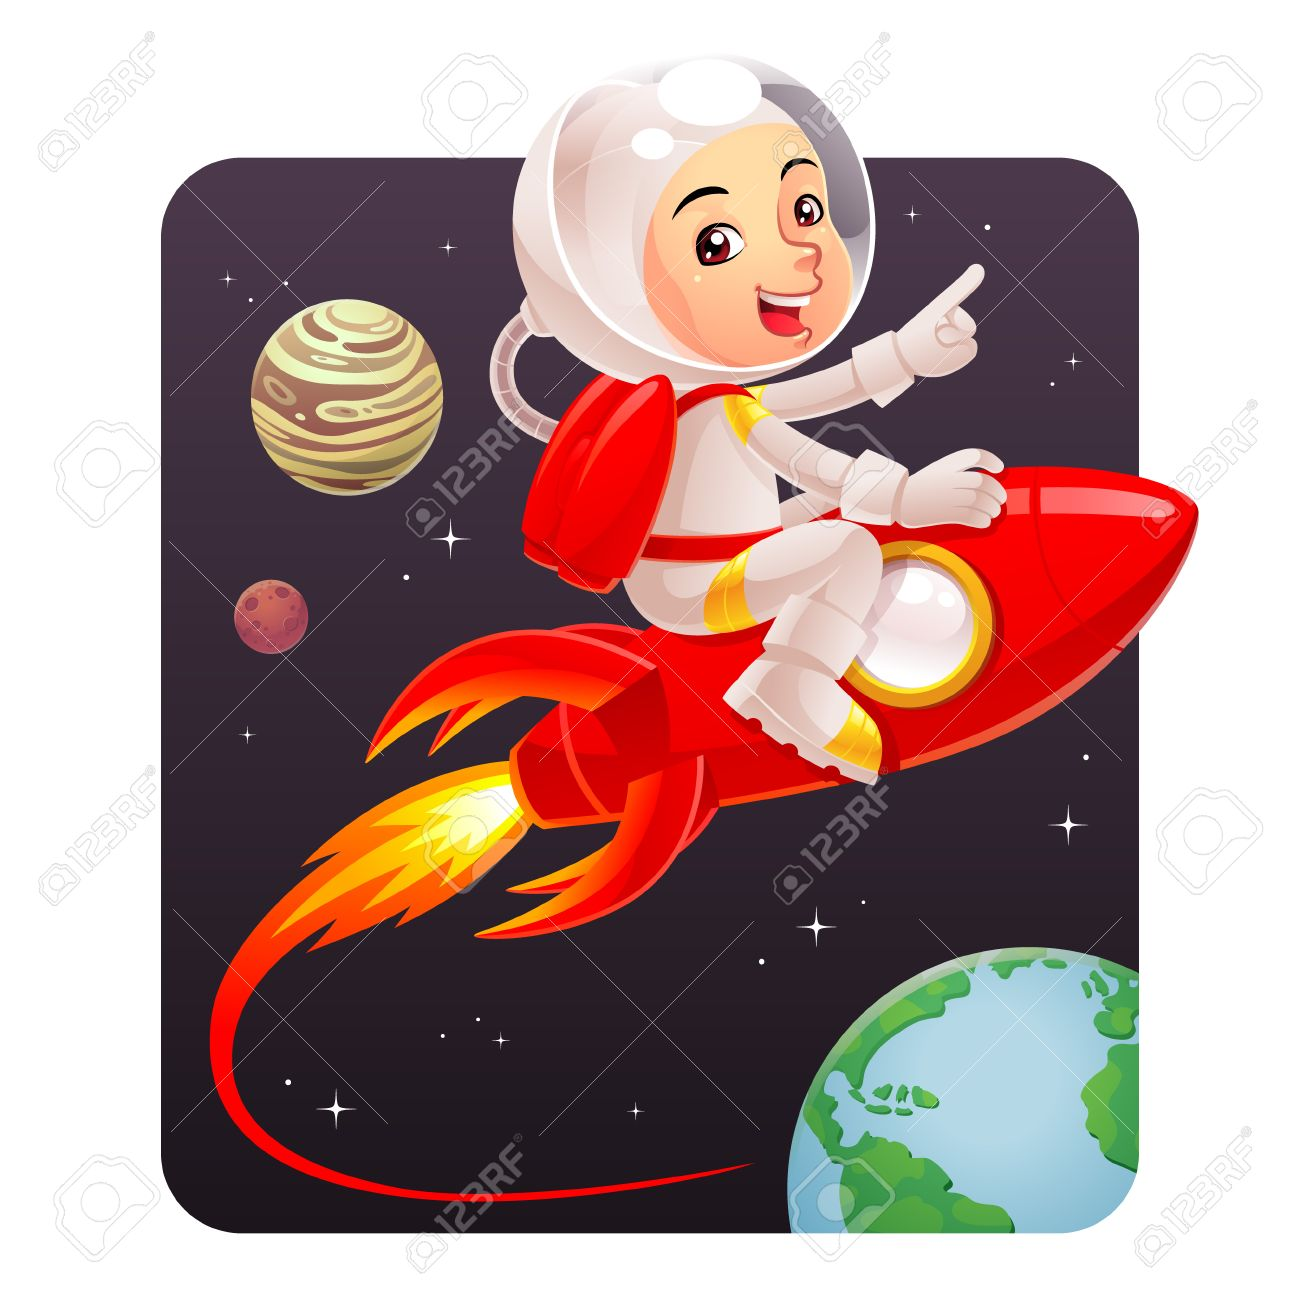 astronaut kid astronaut kid riding red rocket to the space royalty